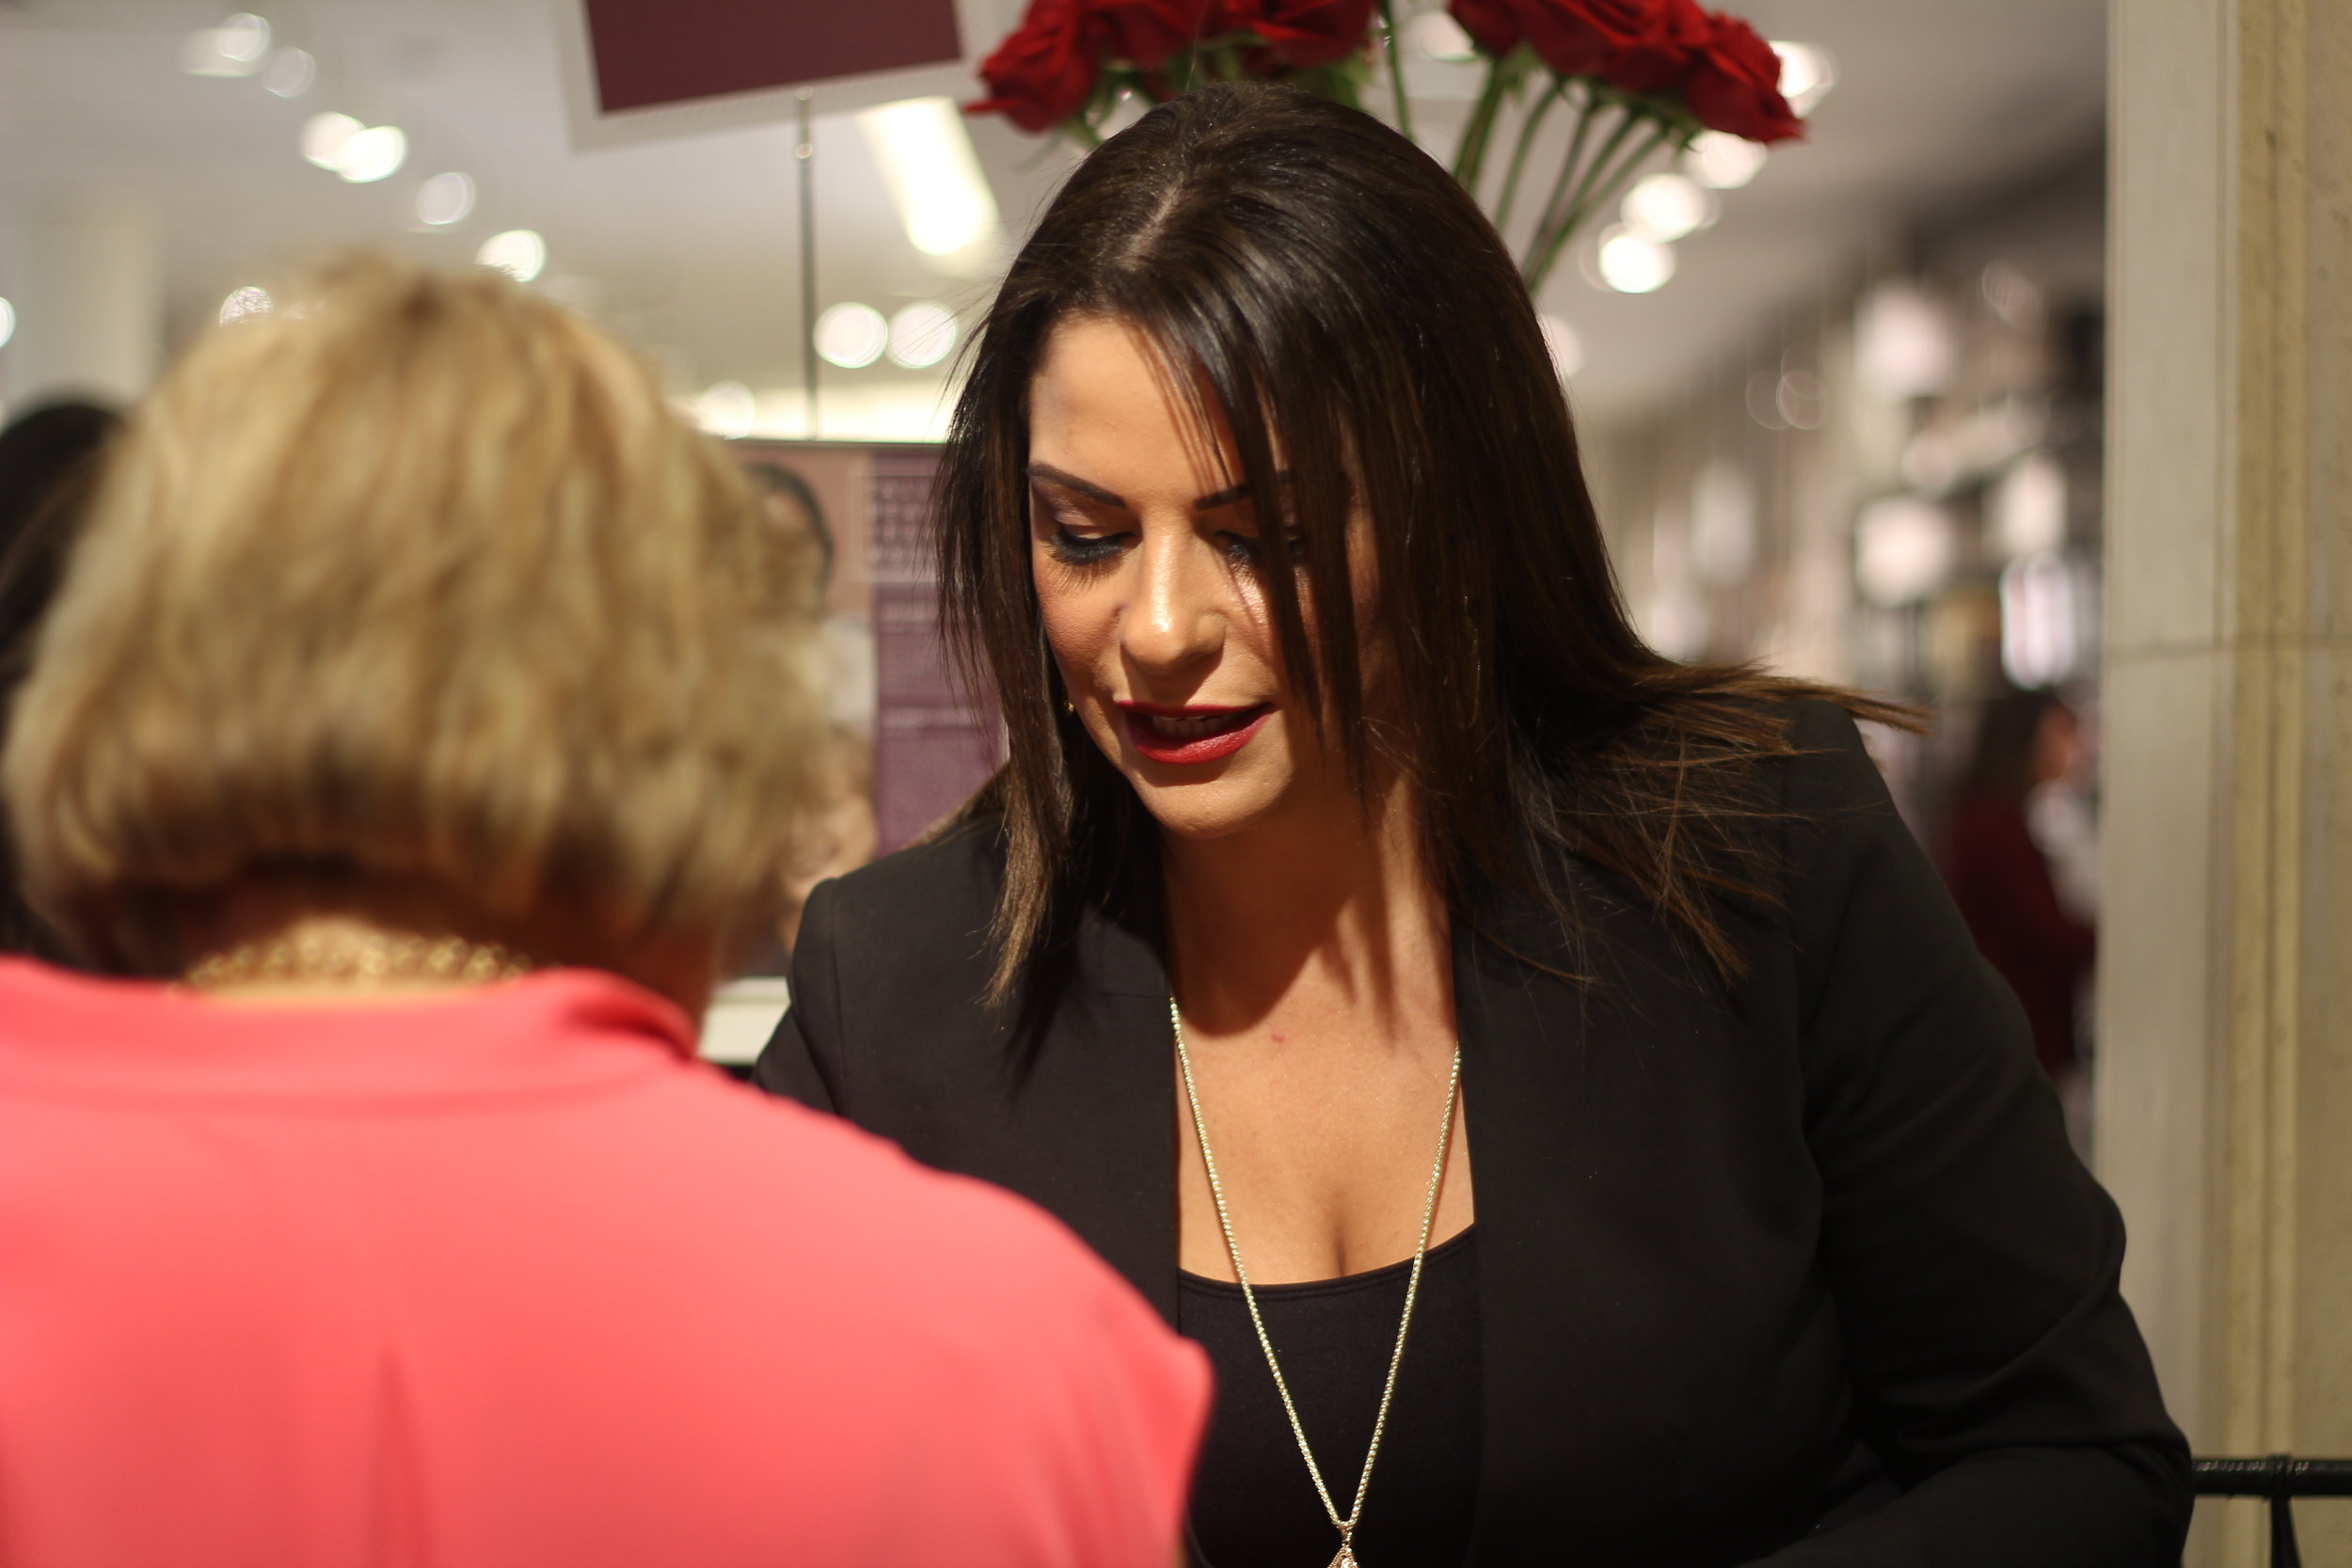 Karen from Parfums de Marly speaking with customers about the 18th century-inspired fragrances.